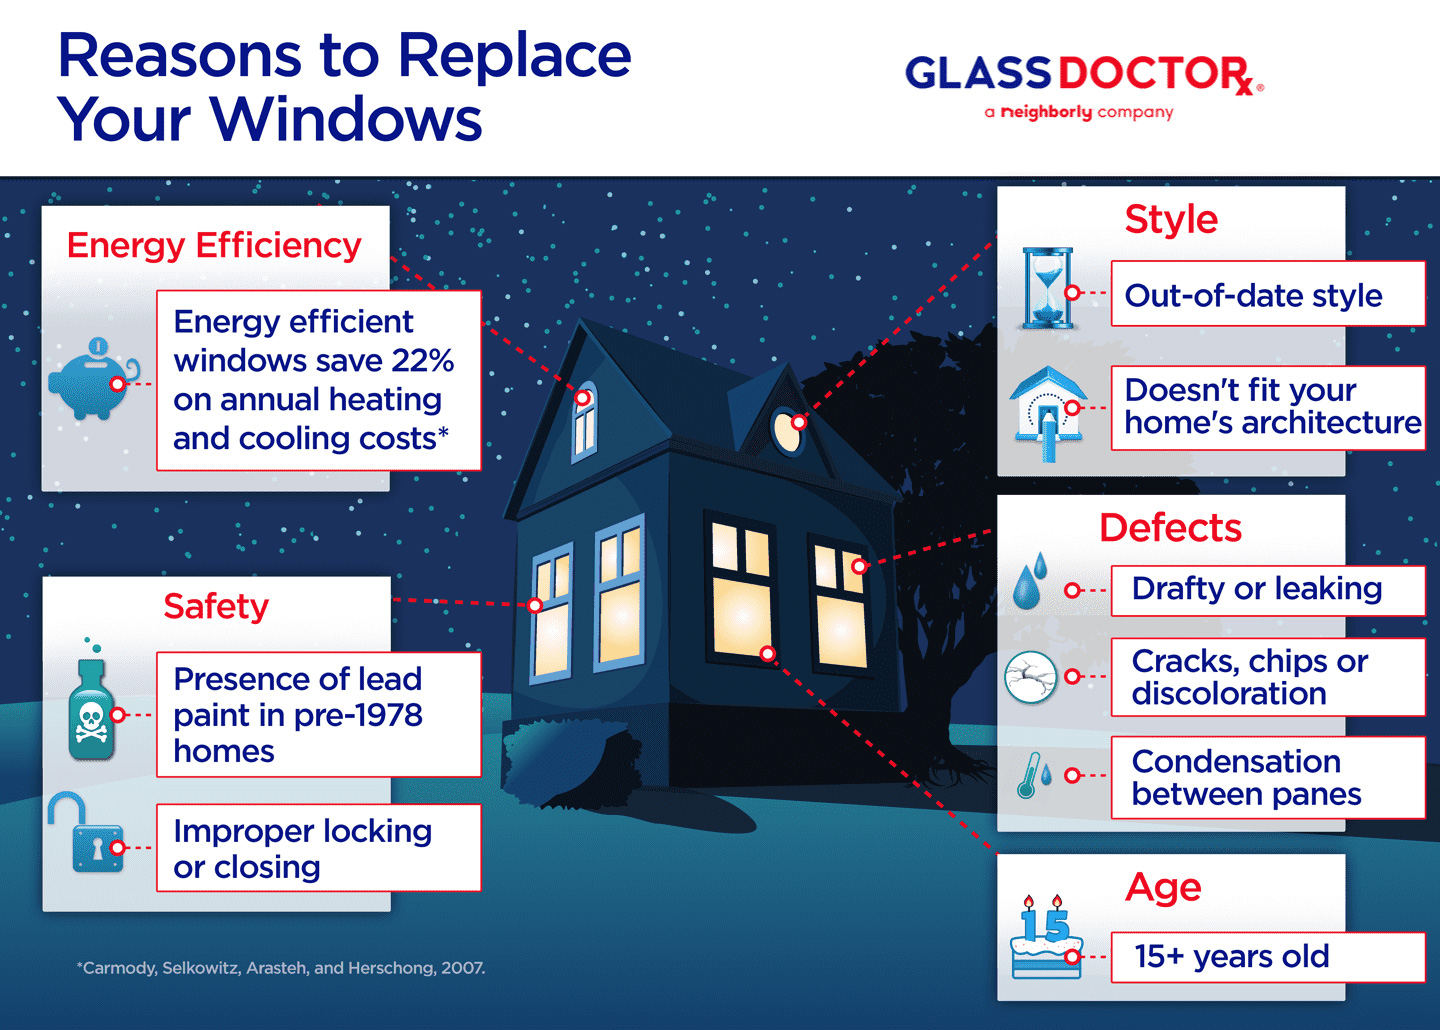 Reason to Replace Your Windows Infographic